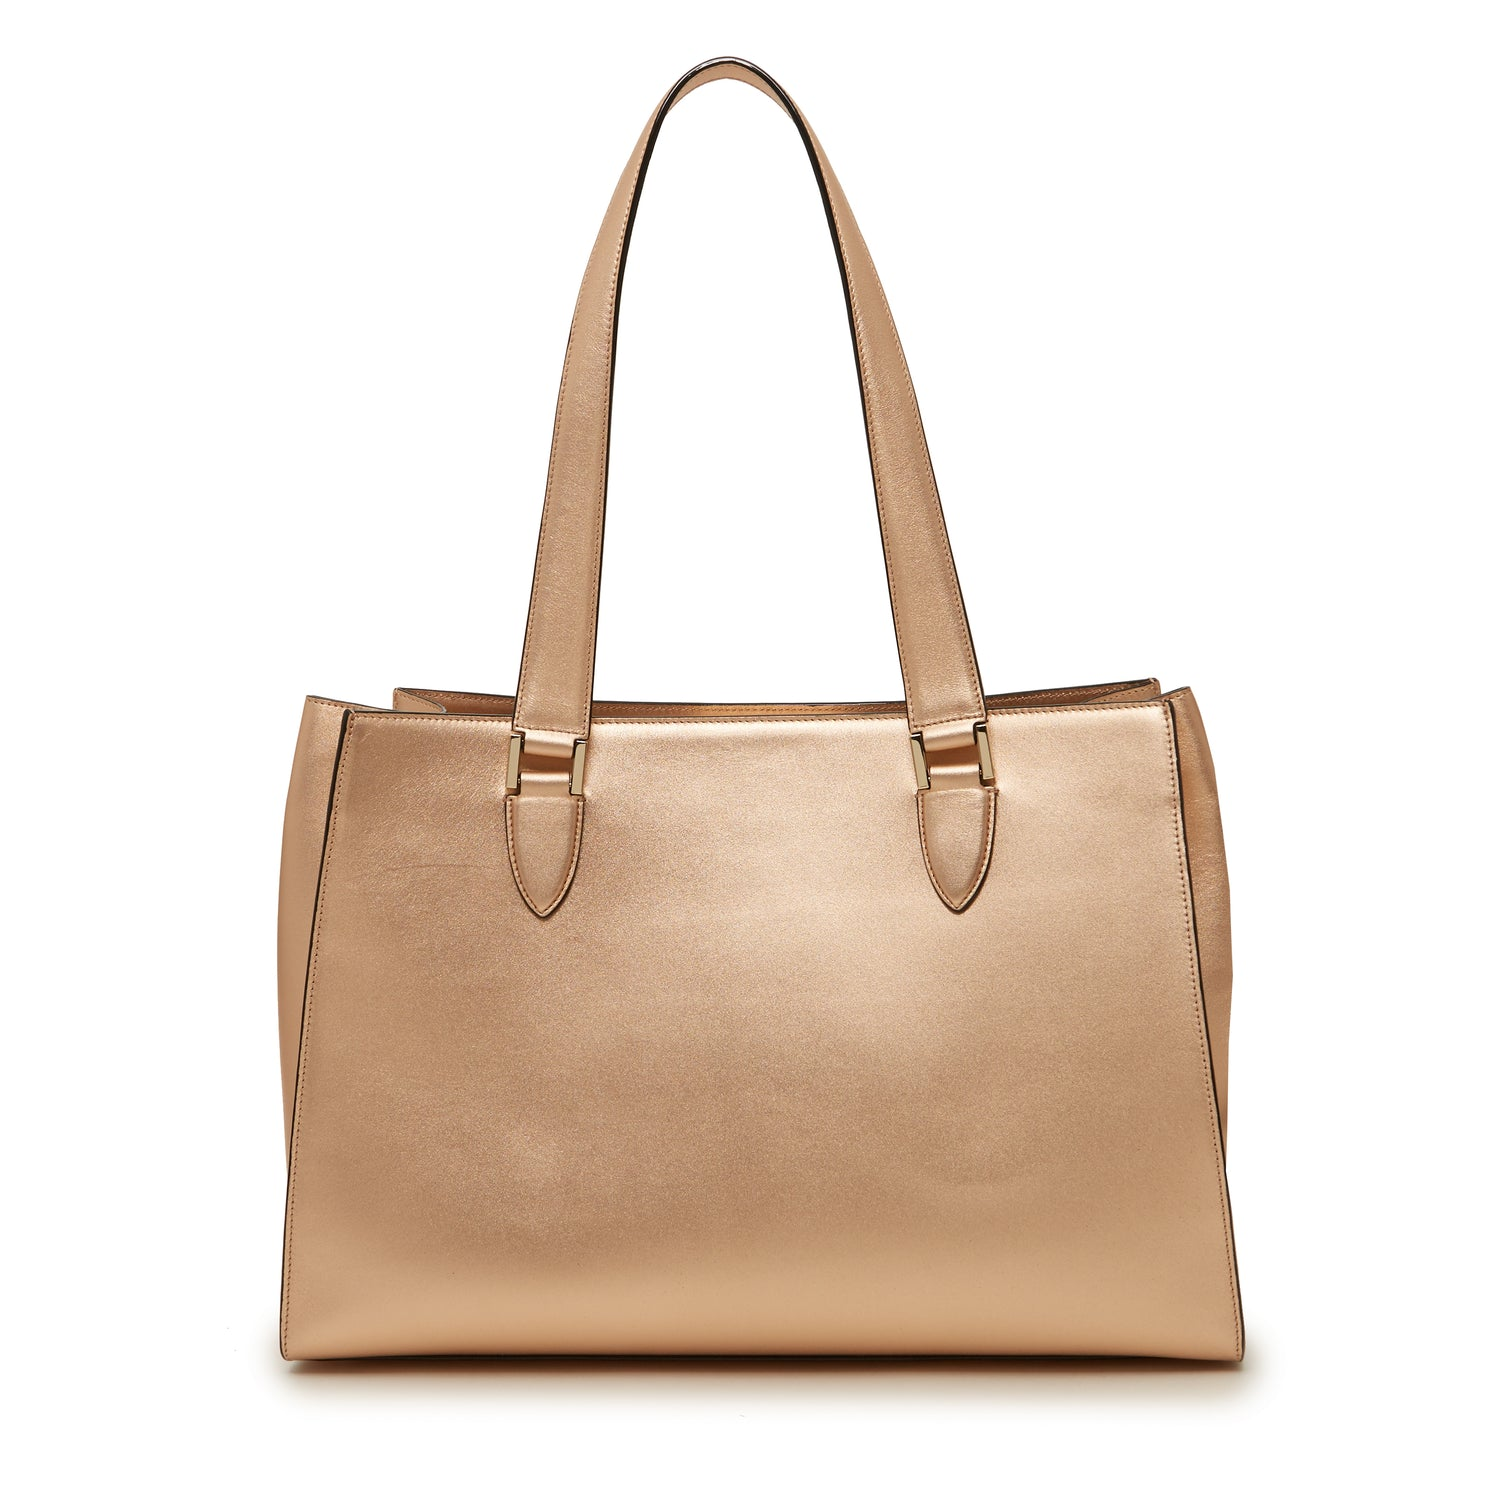 Tyler Tote in Rose Gold